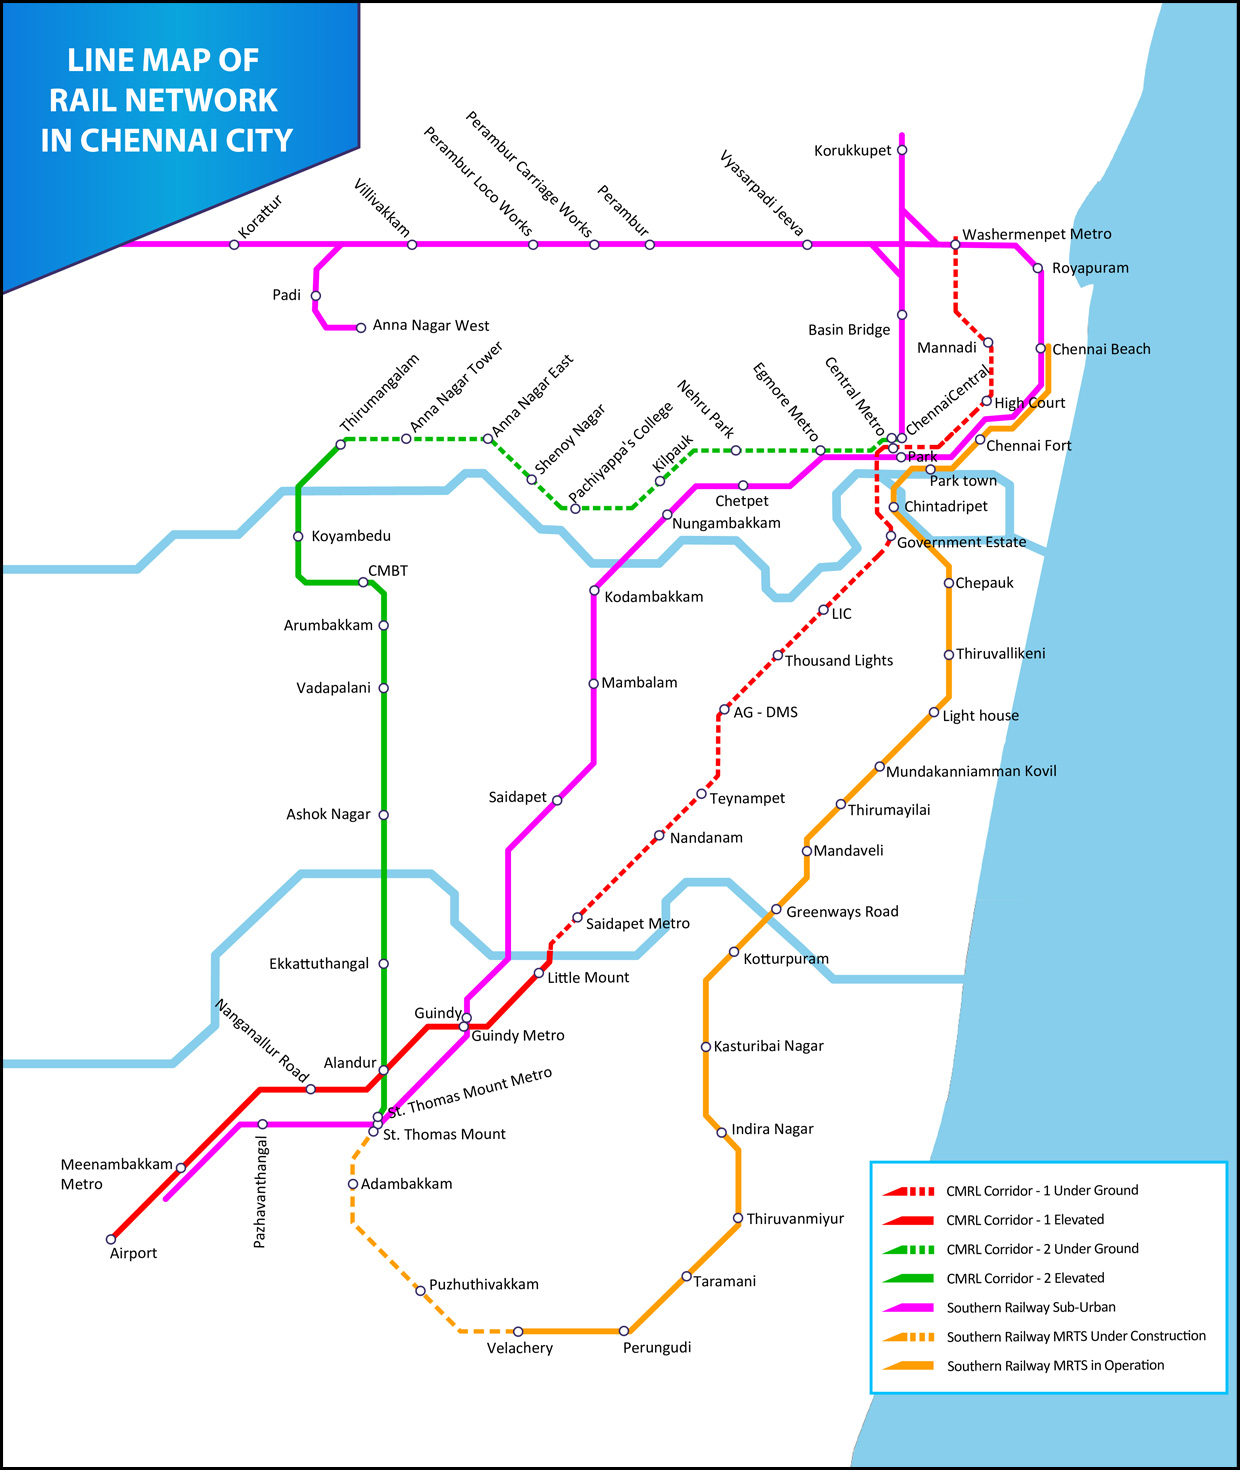 line map of rail network in chennai city